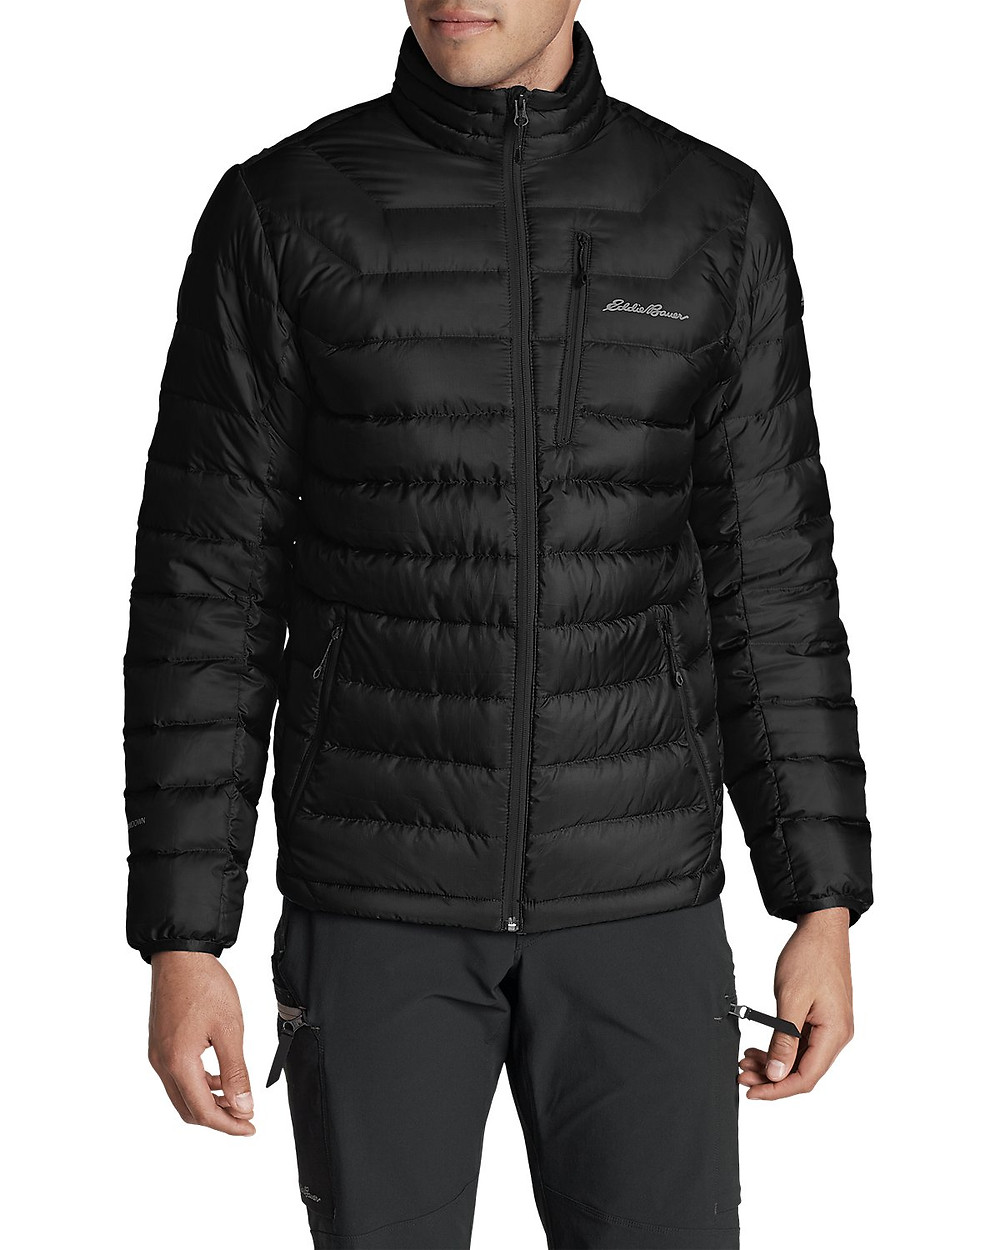 Travel jacket   FTLO Travel   Travel for Young Professionals